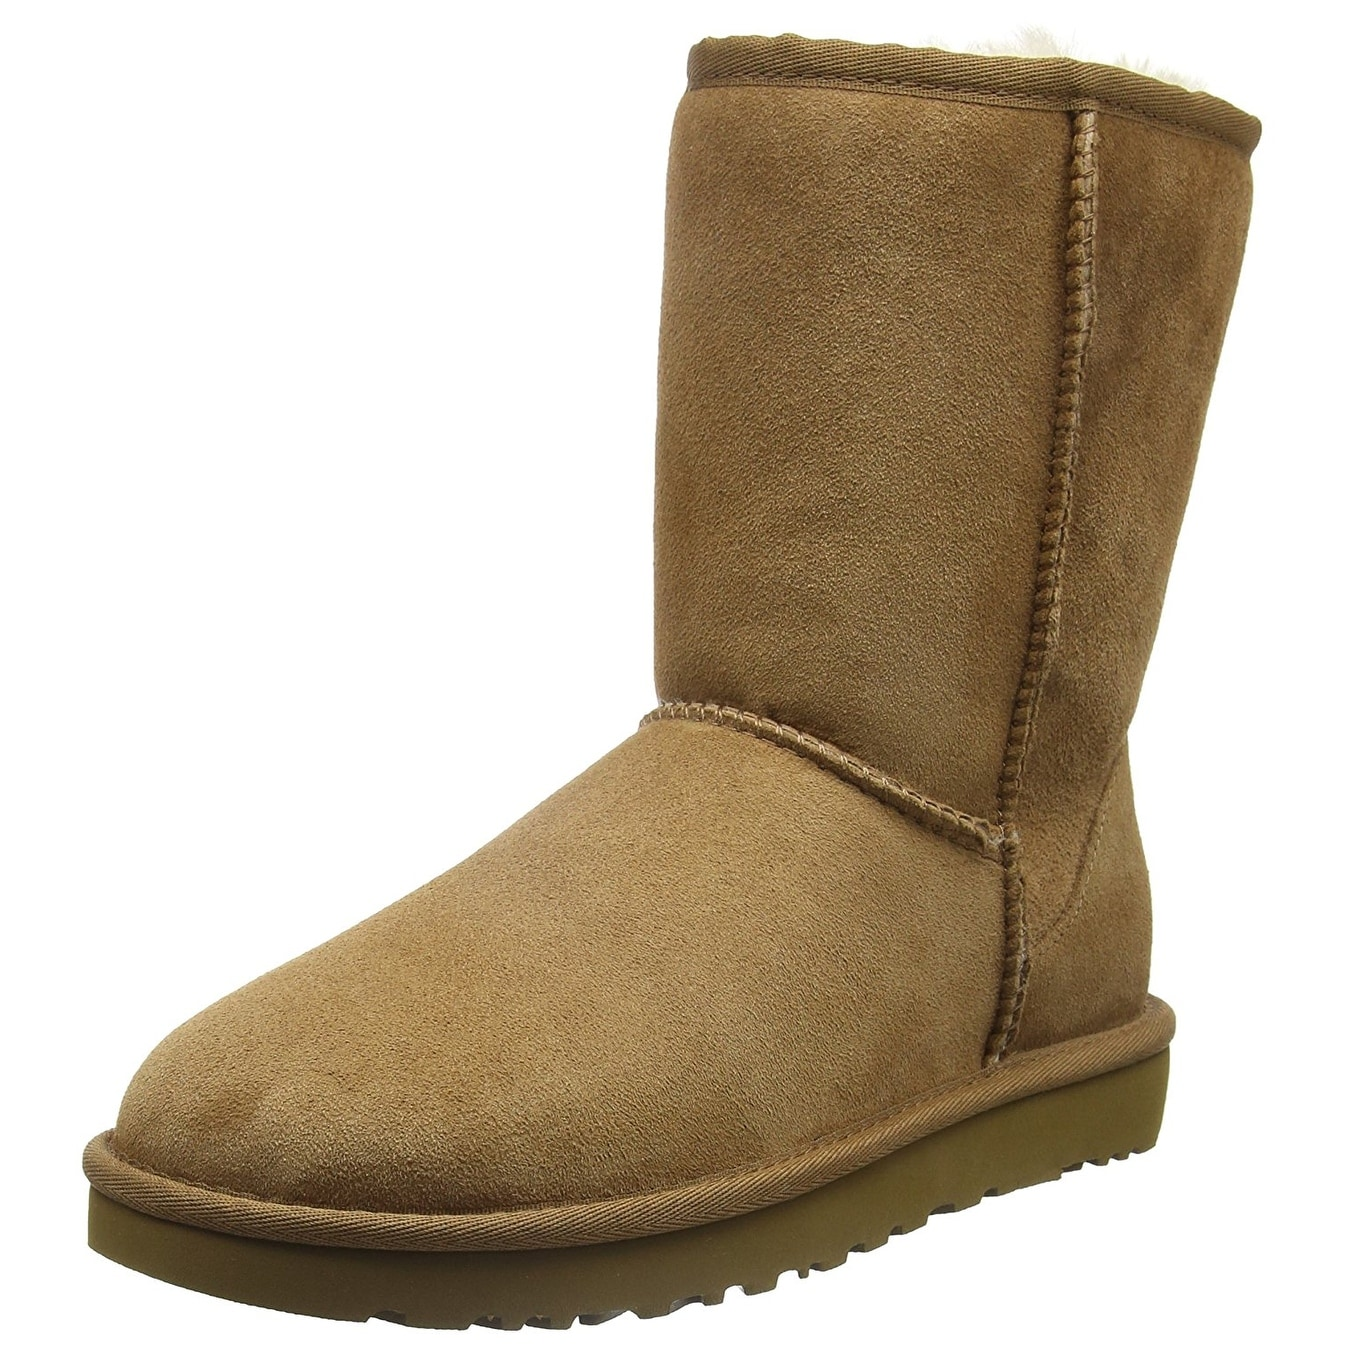 f6808b84897 Buy UGG Women's Boots Online at Overstock | Our Best Women's Shoes Deals